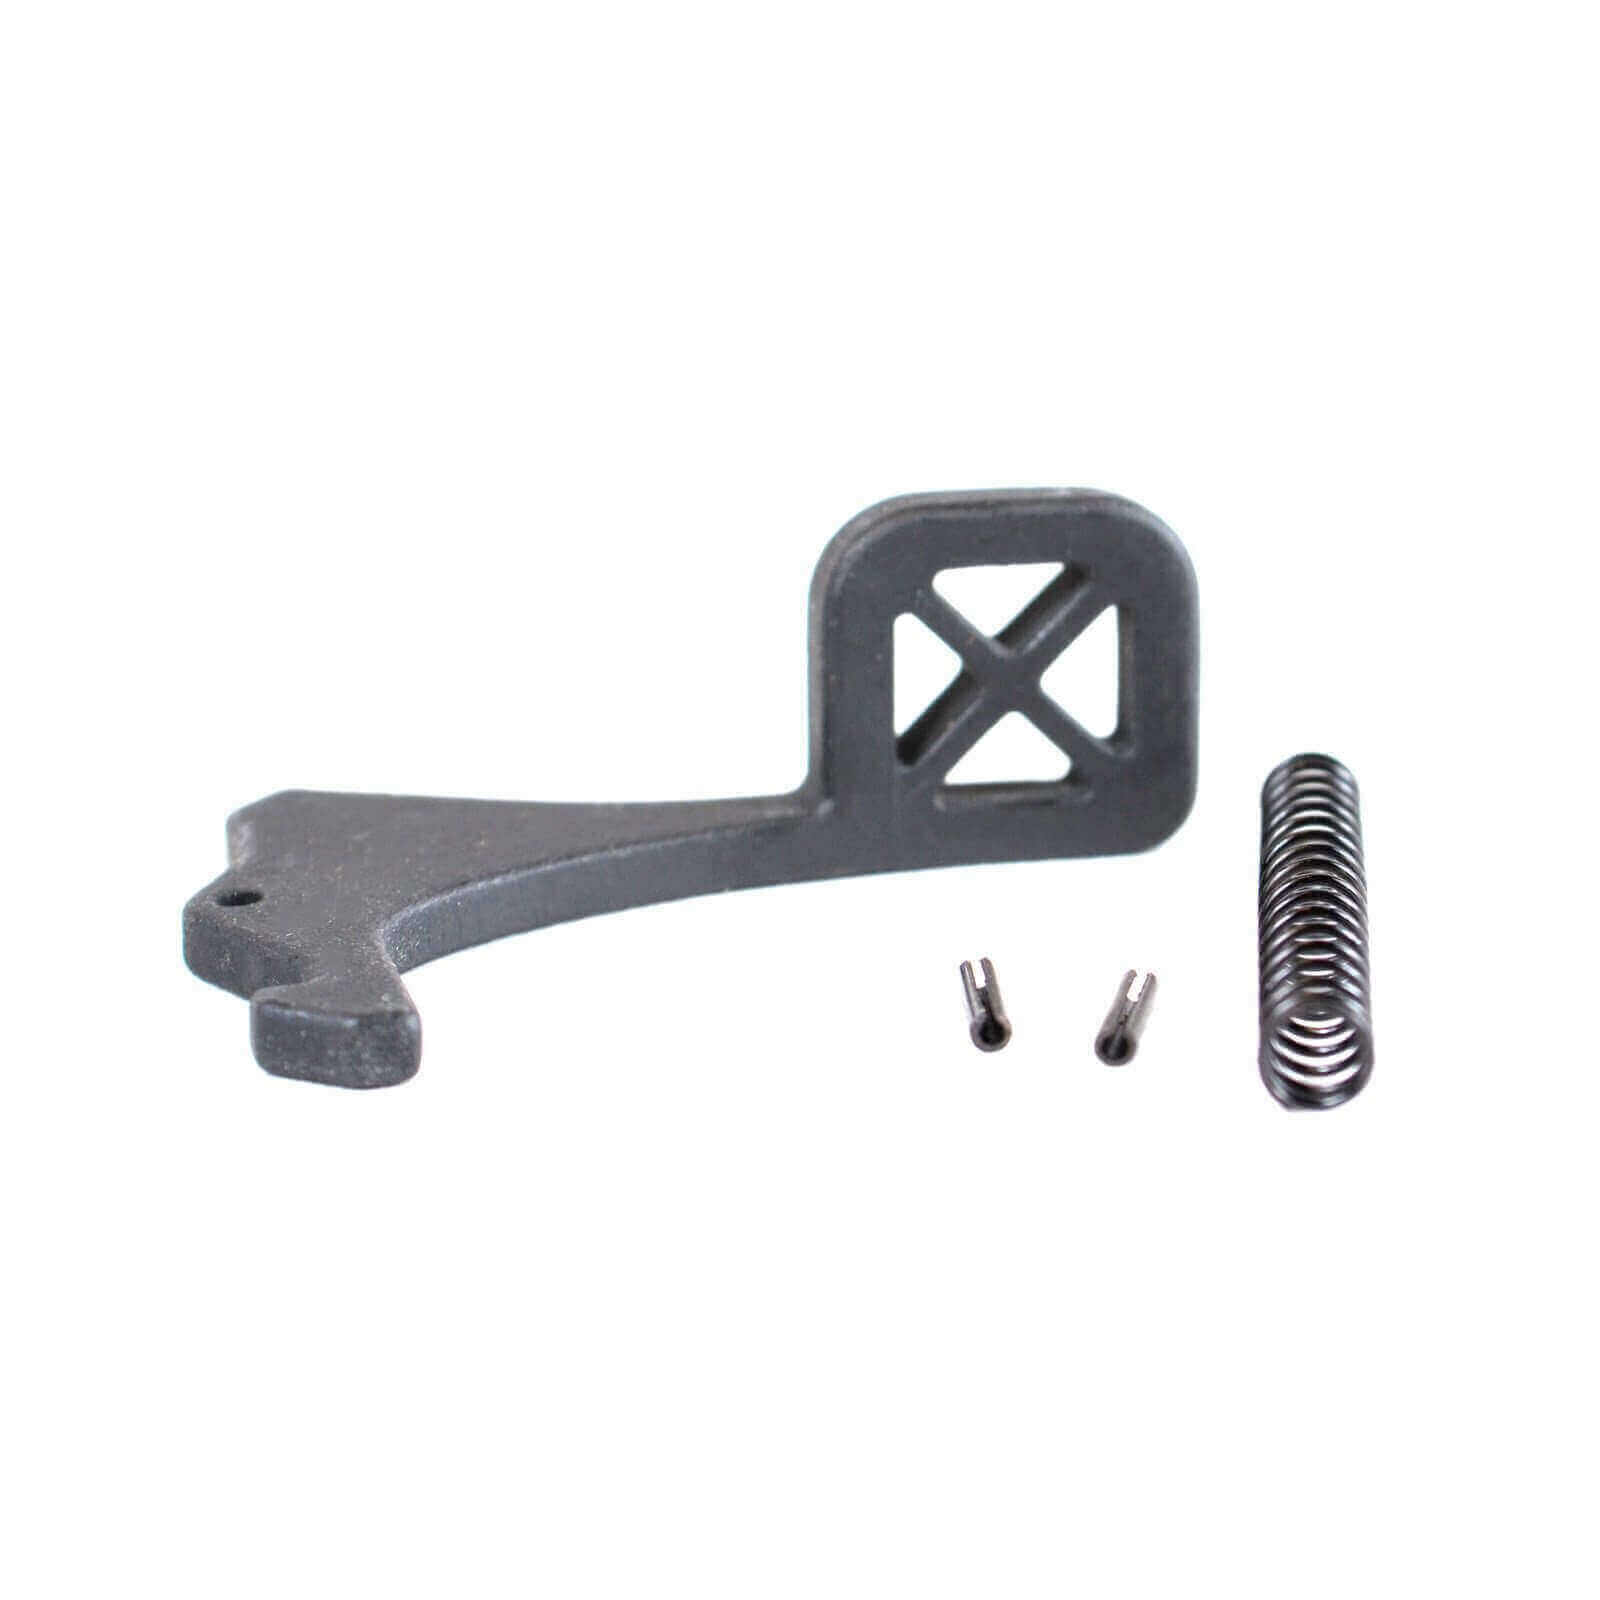 products-ch-latch-05.jpg